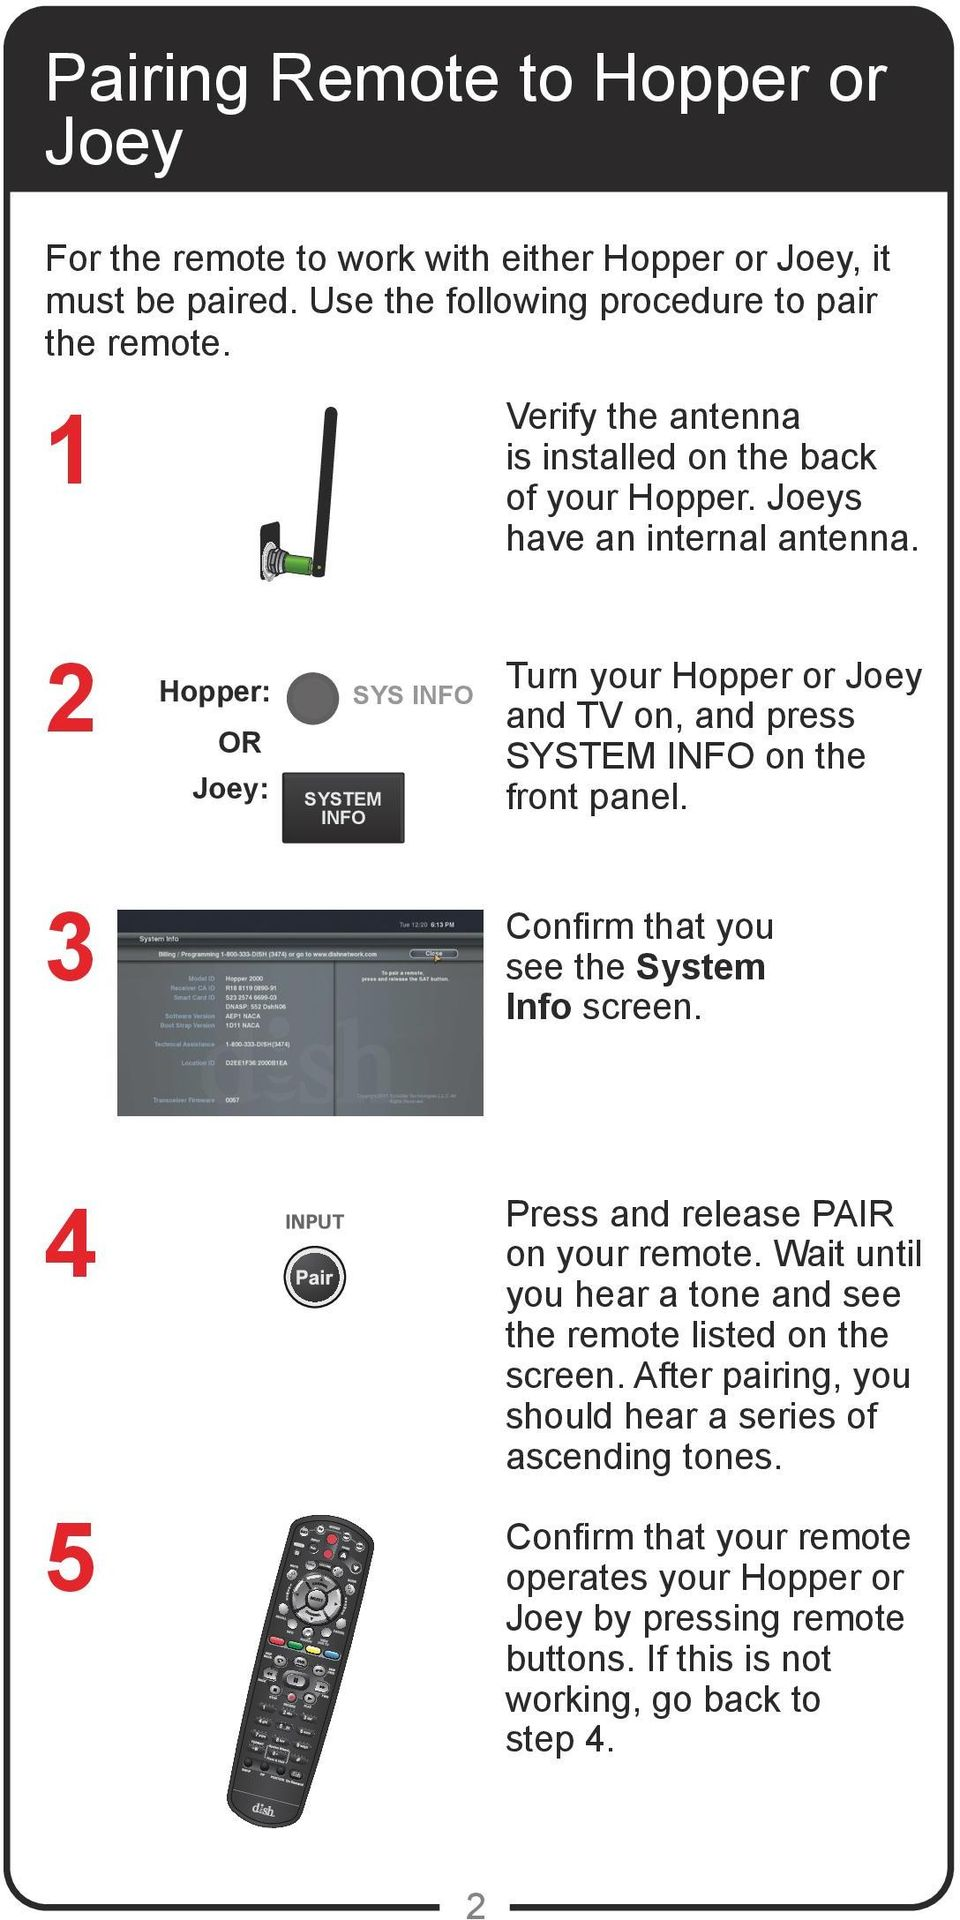 2 Hopper: OR Joey: SYSTEM INFO SYS INFO Turn your Hopper or Joey and TV on, and press SYSTEM INFO on the front panel. 3 Confirm that you see the System Info screen.